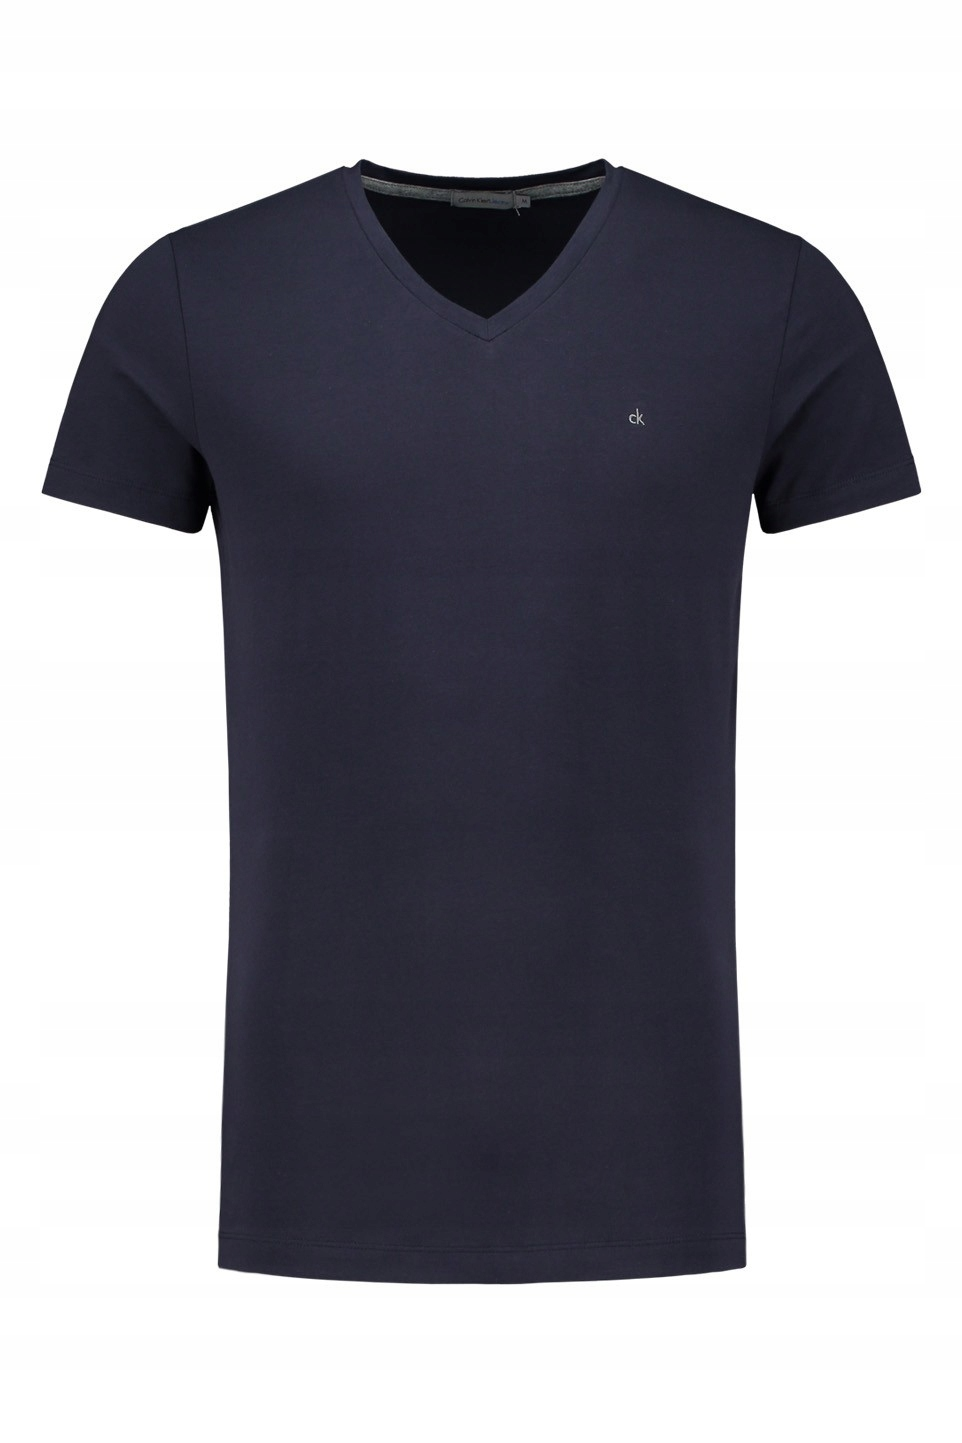 Nowy 100% Oryginalny t-shirt Calvin Klein Jeans L